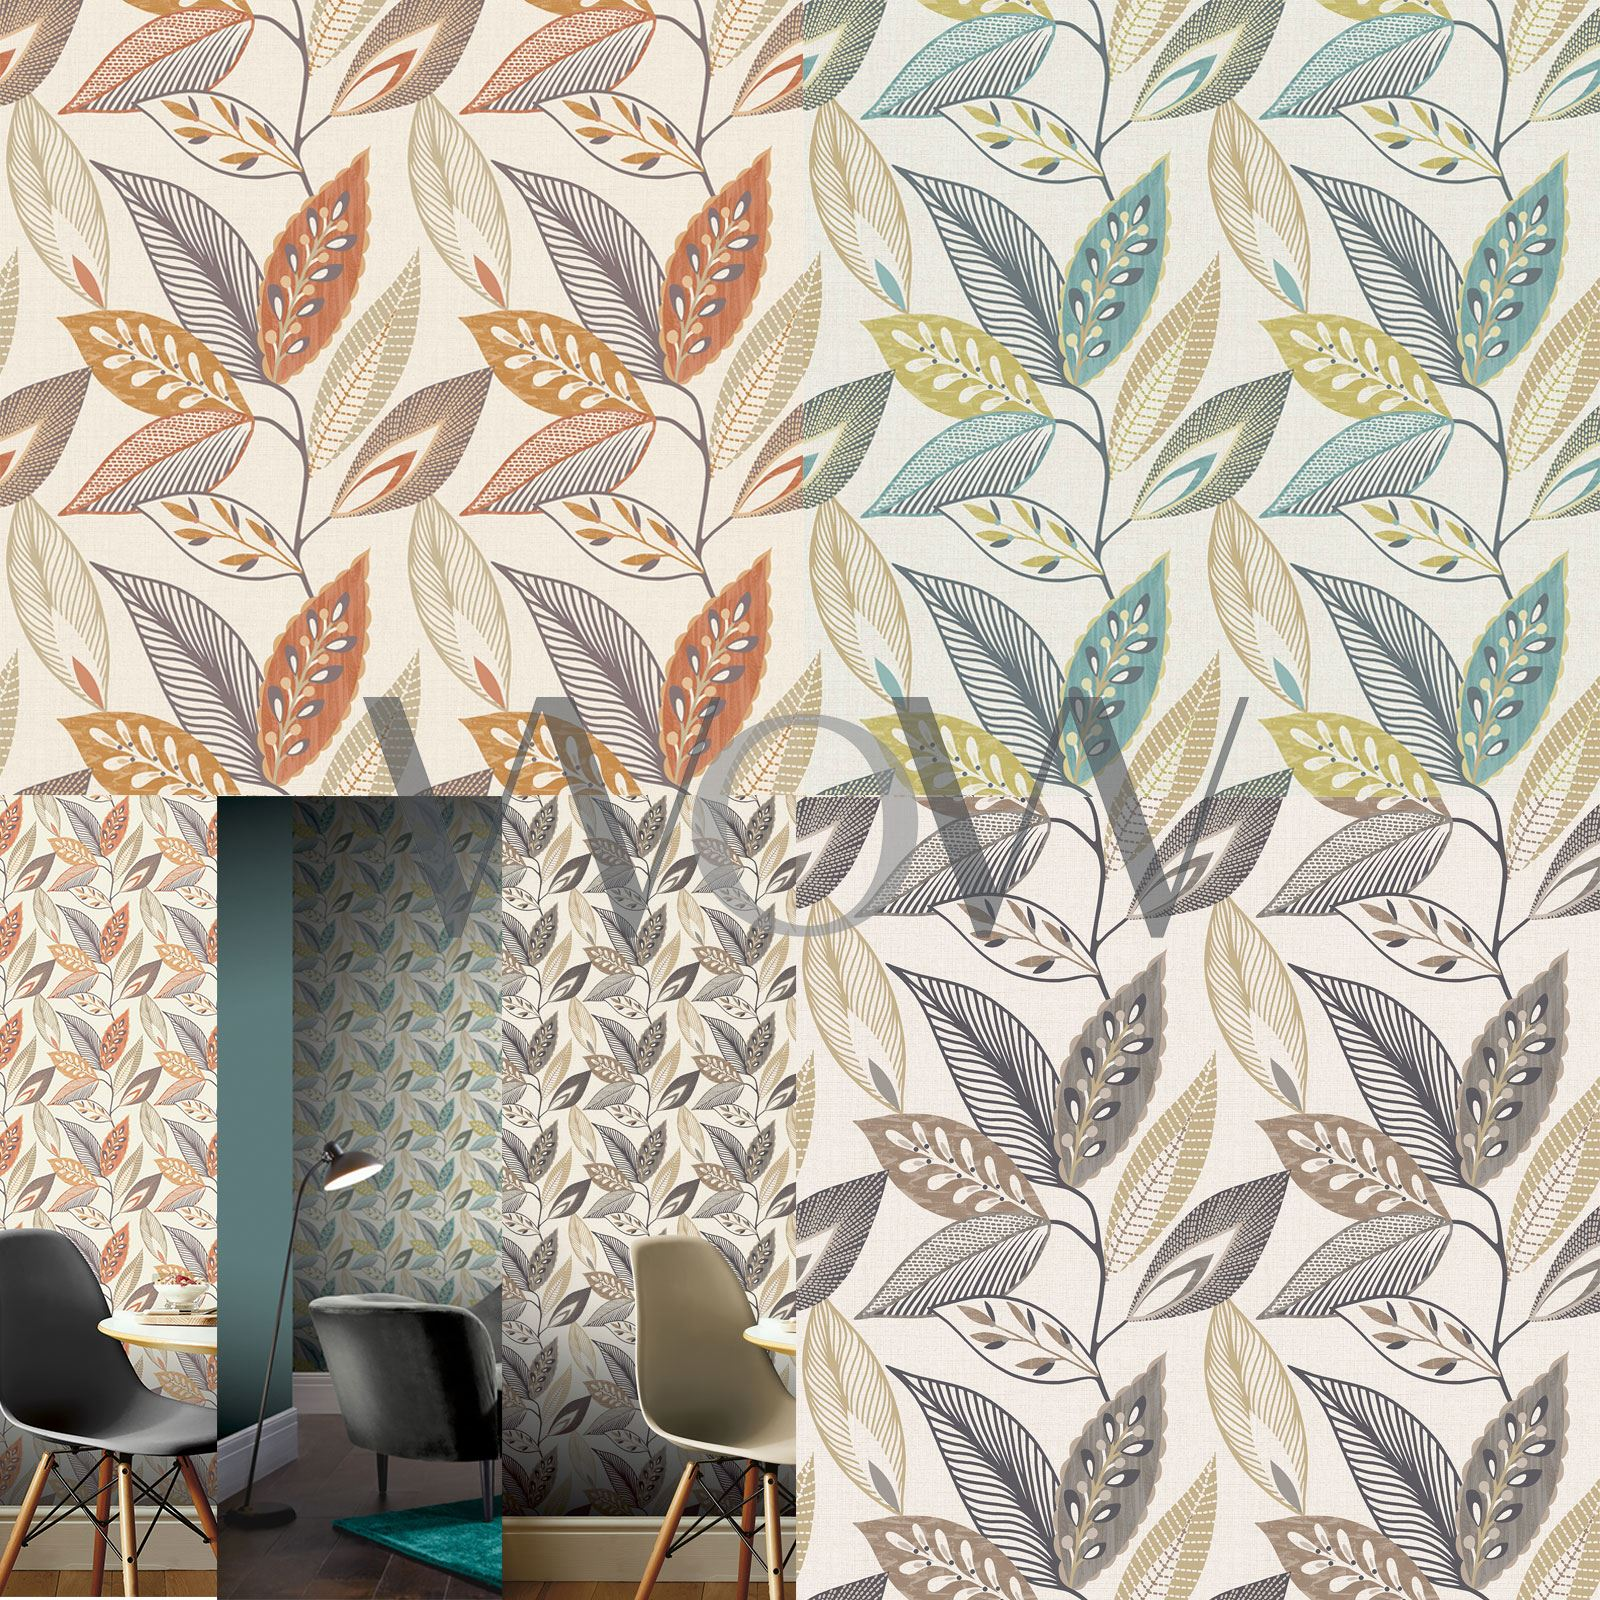 Arthouse Biege Wallpaper Roll Colour Opera Floral Motif Design 615503